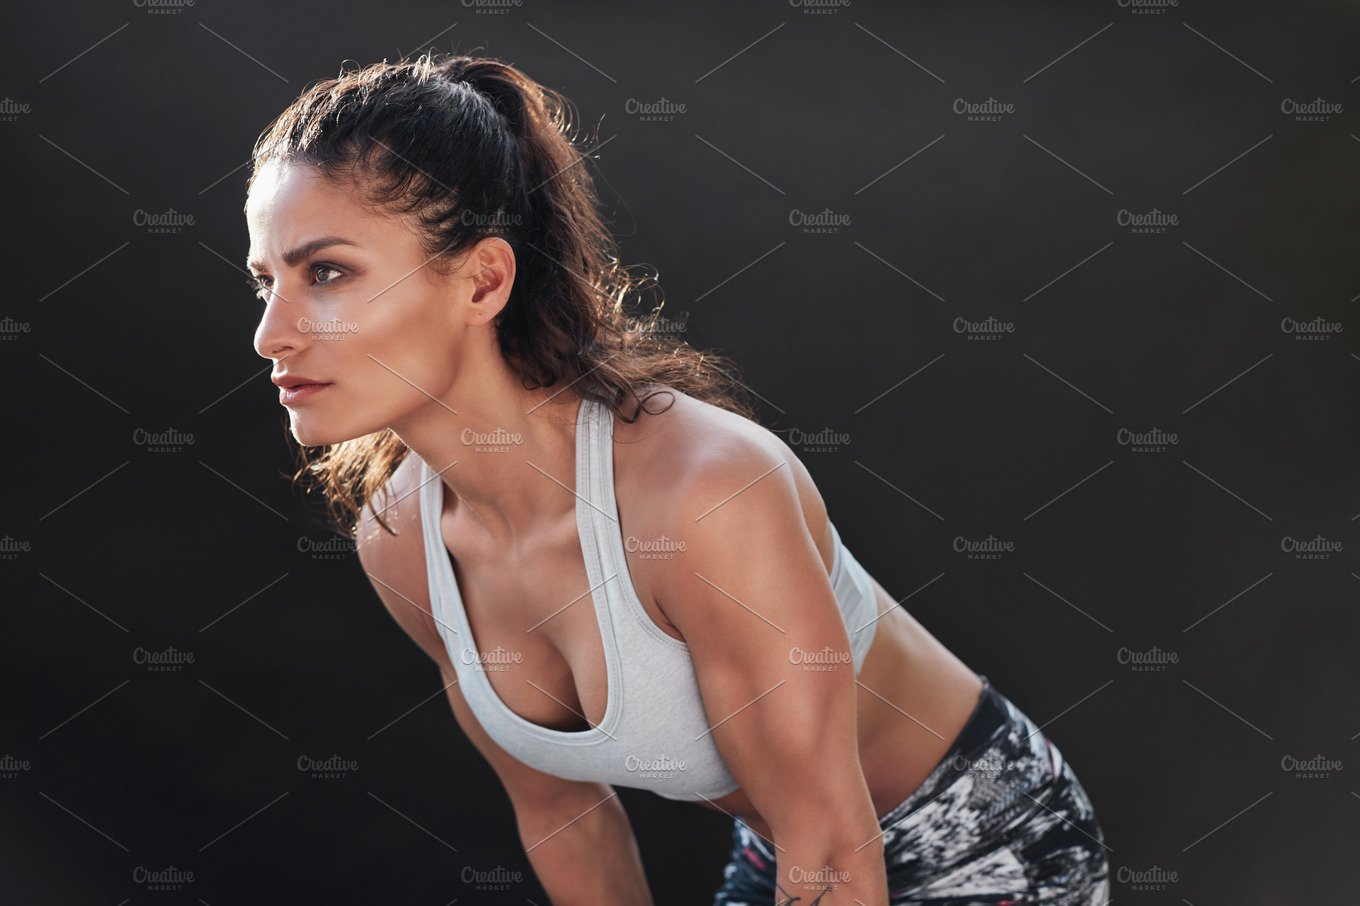 Strong woman with muscular body ~ People Images ~ Creative Market